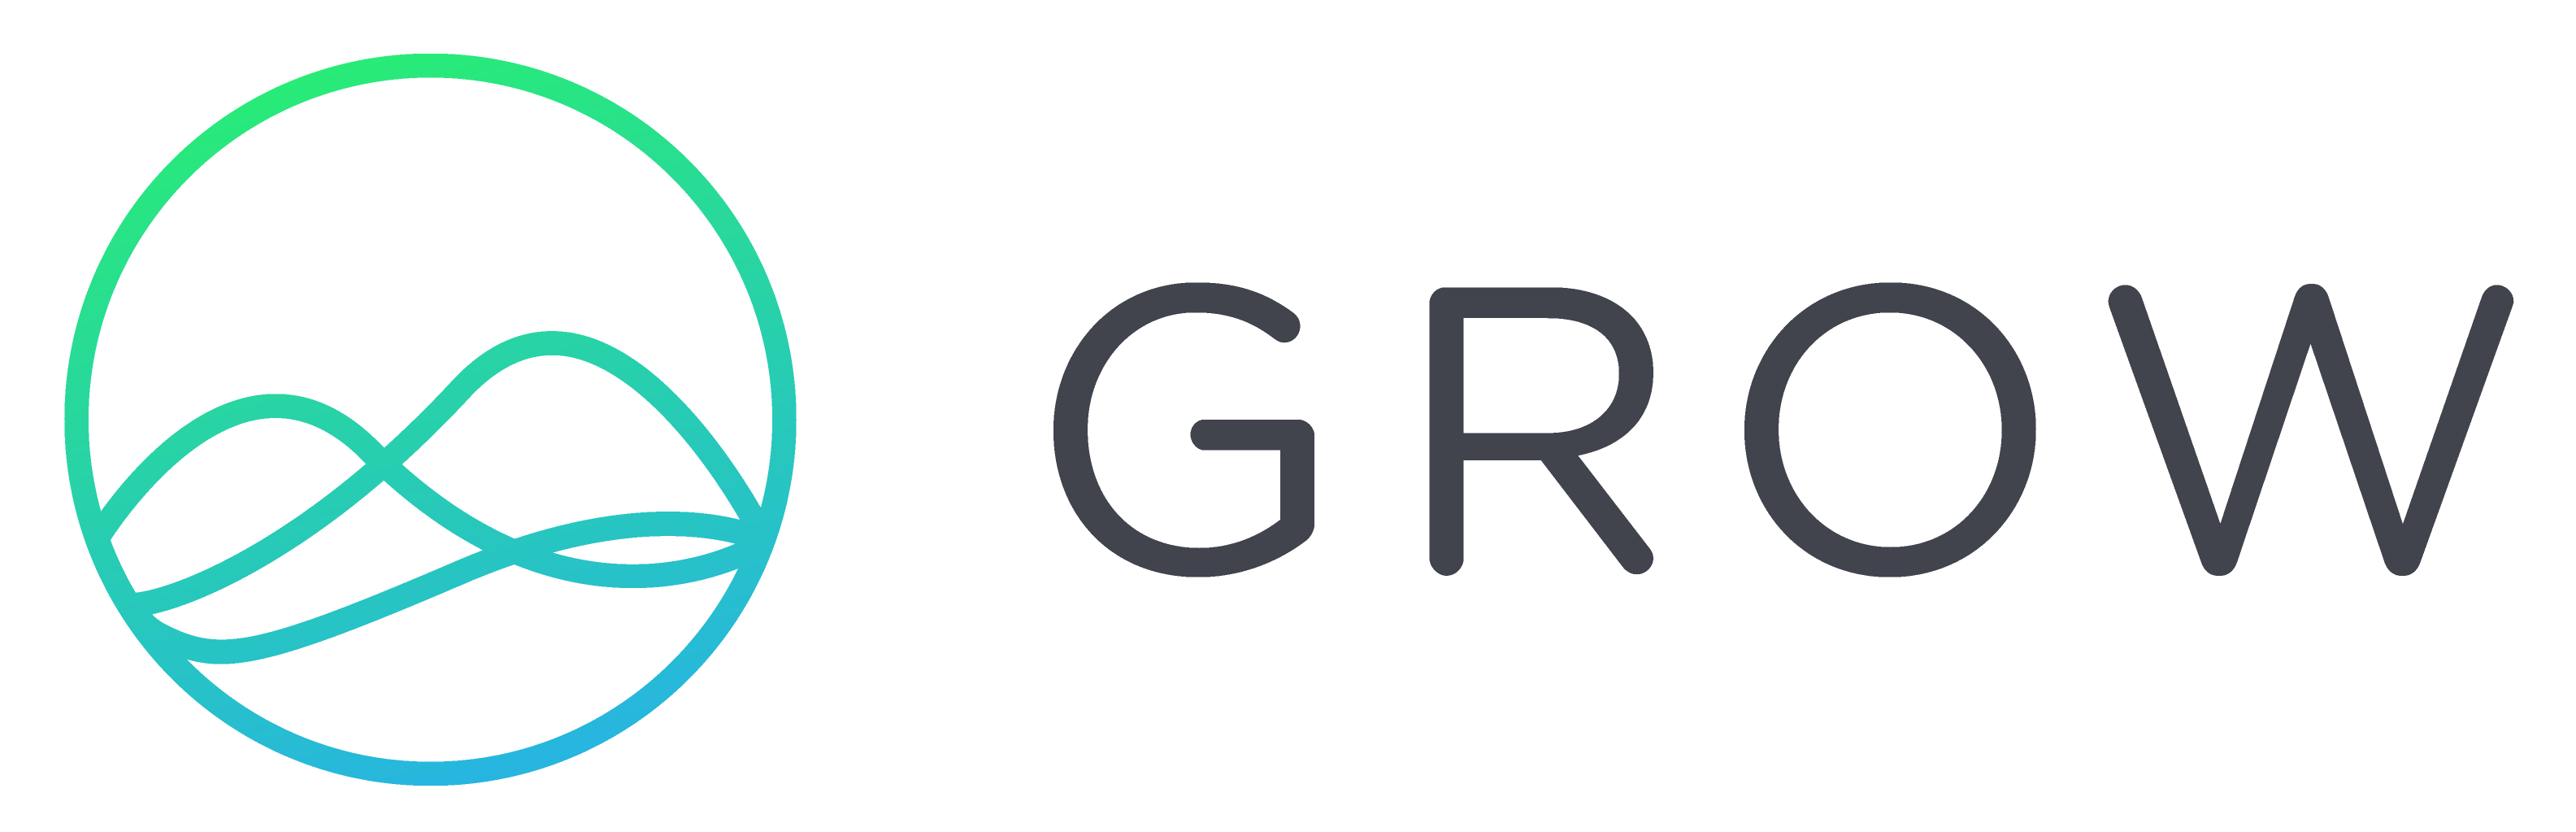 Grow.com integration